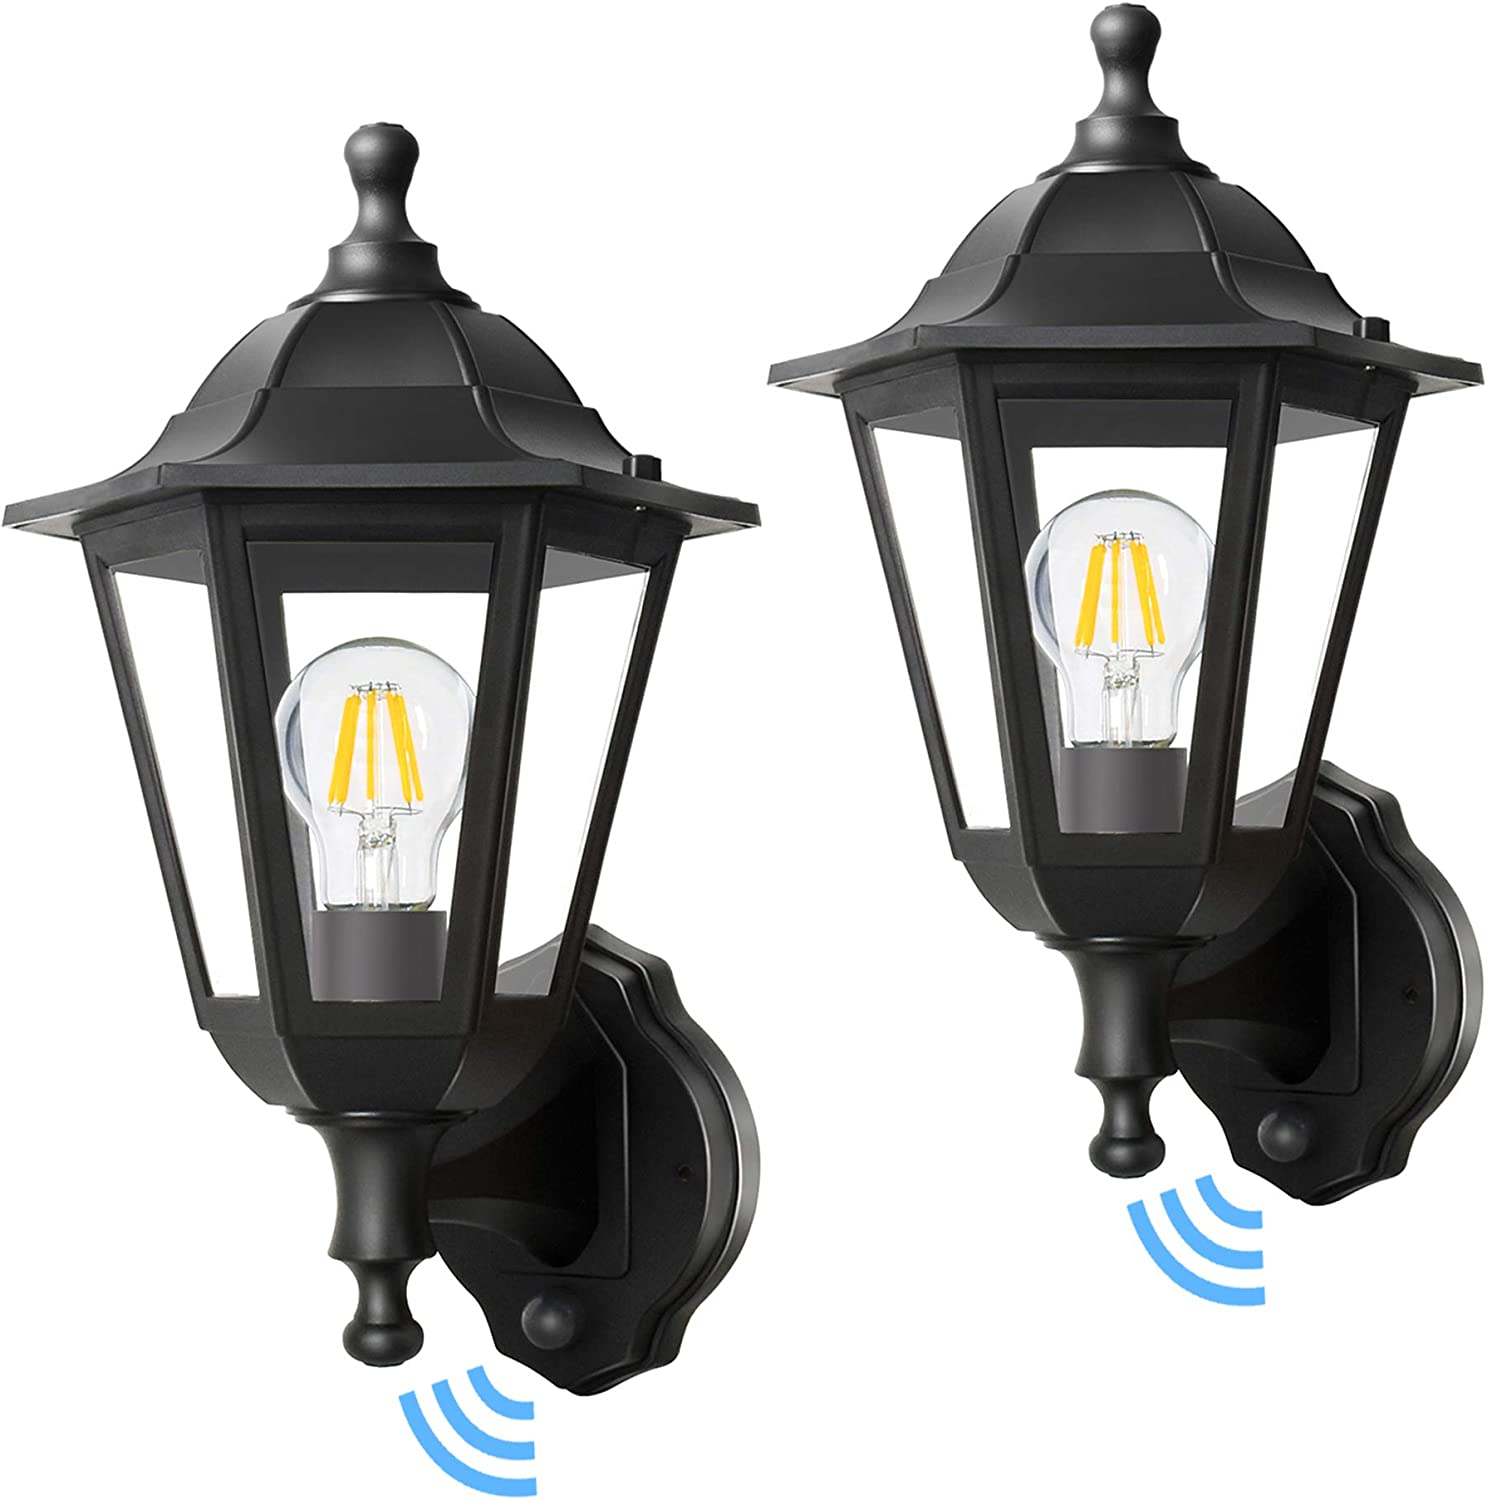 Amazon Com Fudesy 2 Pack Dusk To Dawn Outdoor Light Fixtures Auto On Off Smart Photocell Plastic Outdoor Wall Lanterns Electric Black Outdoor Lights Wall Mount For Porch Garage Driveway Fds616epsb2 Home Improvement